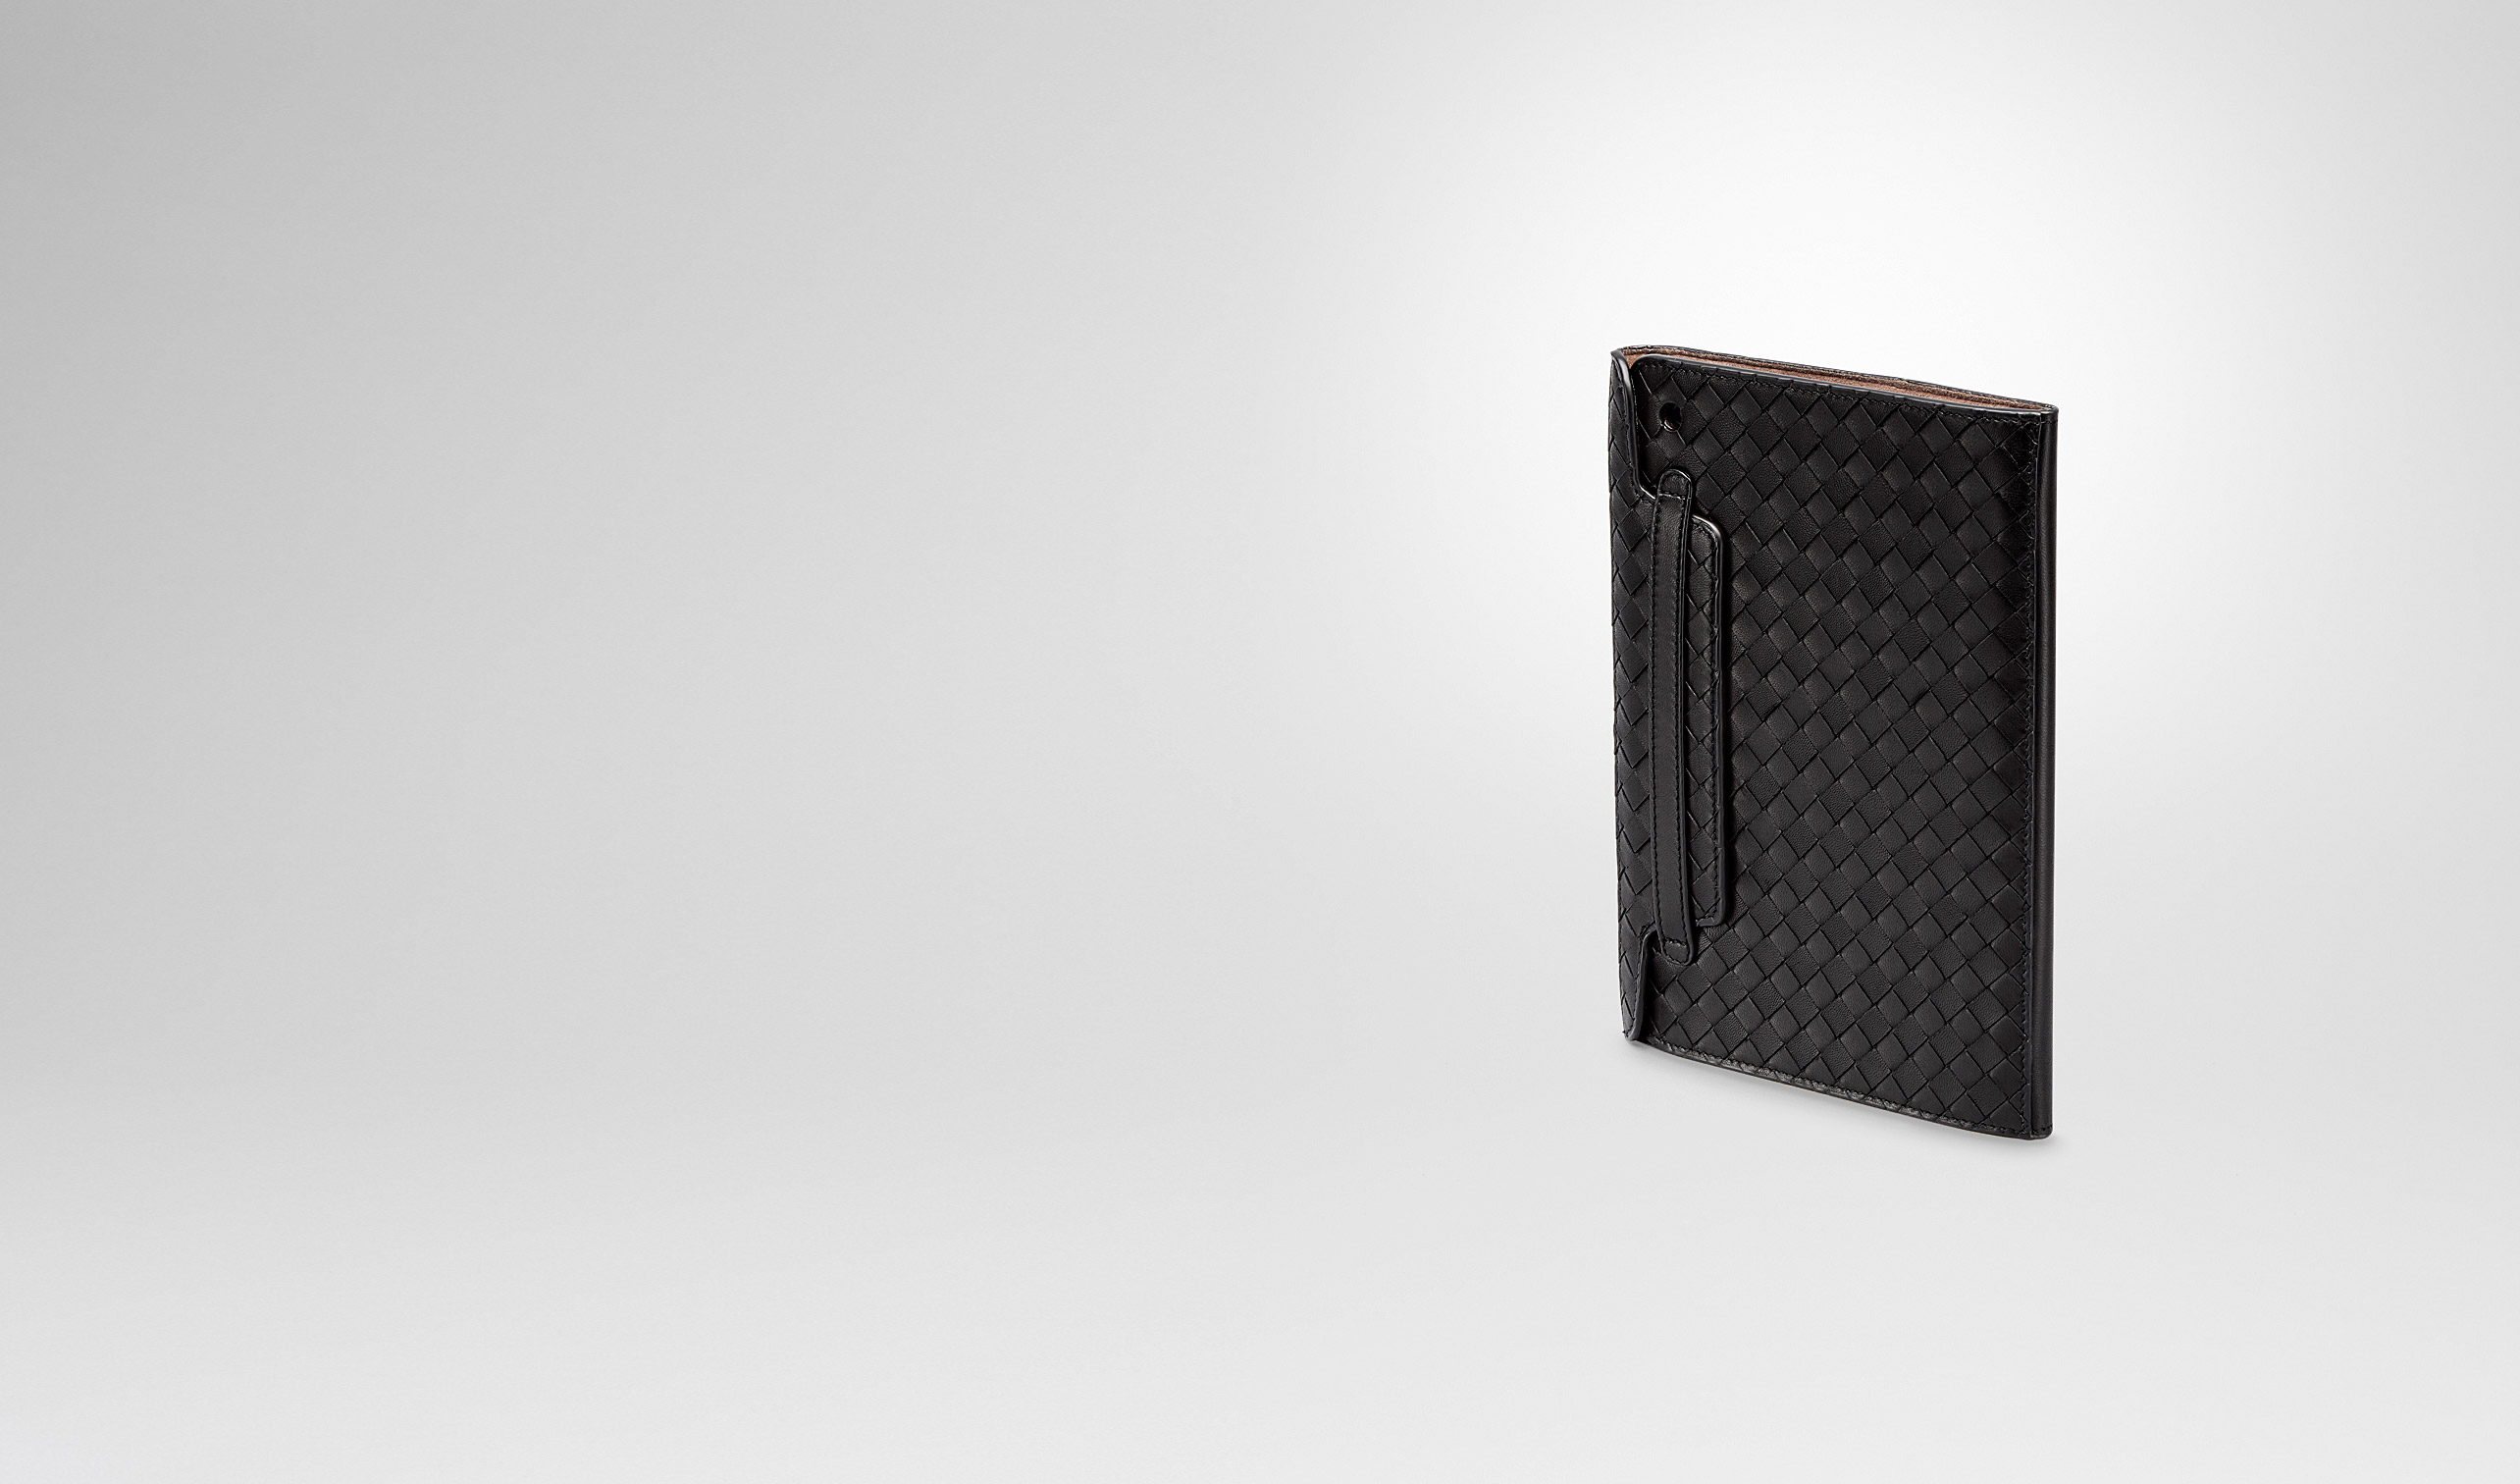 BOTTEGA VENETA Altro accessorio in pelle E CUSTODIA PER IPAD MINI IN INTRECCIATO NAPPA NERO pl